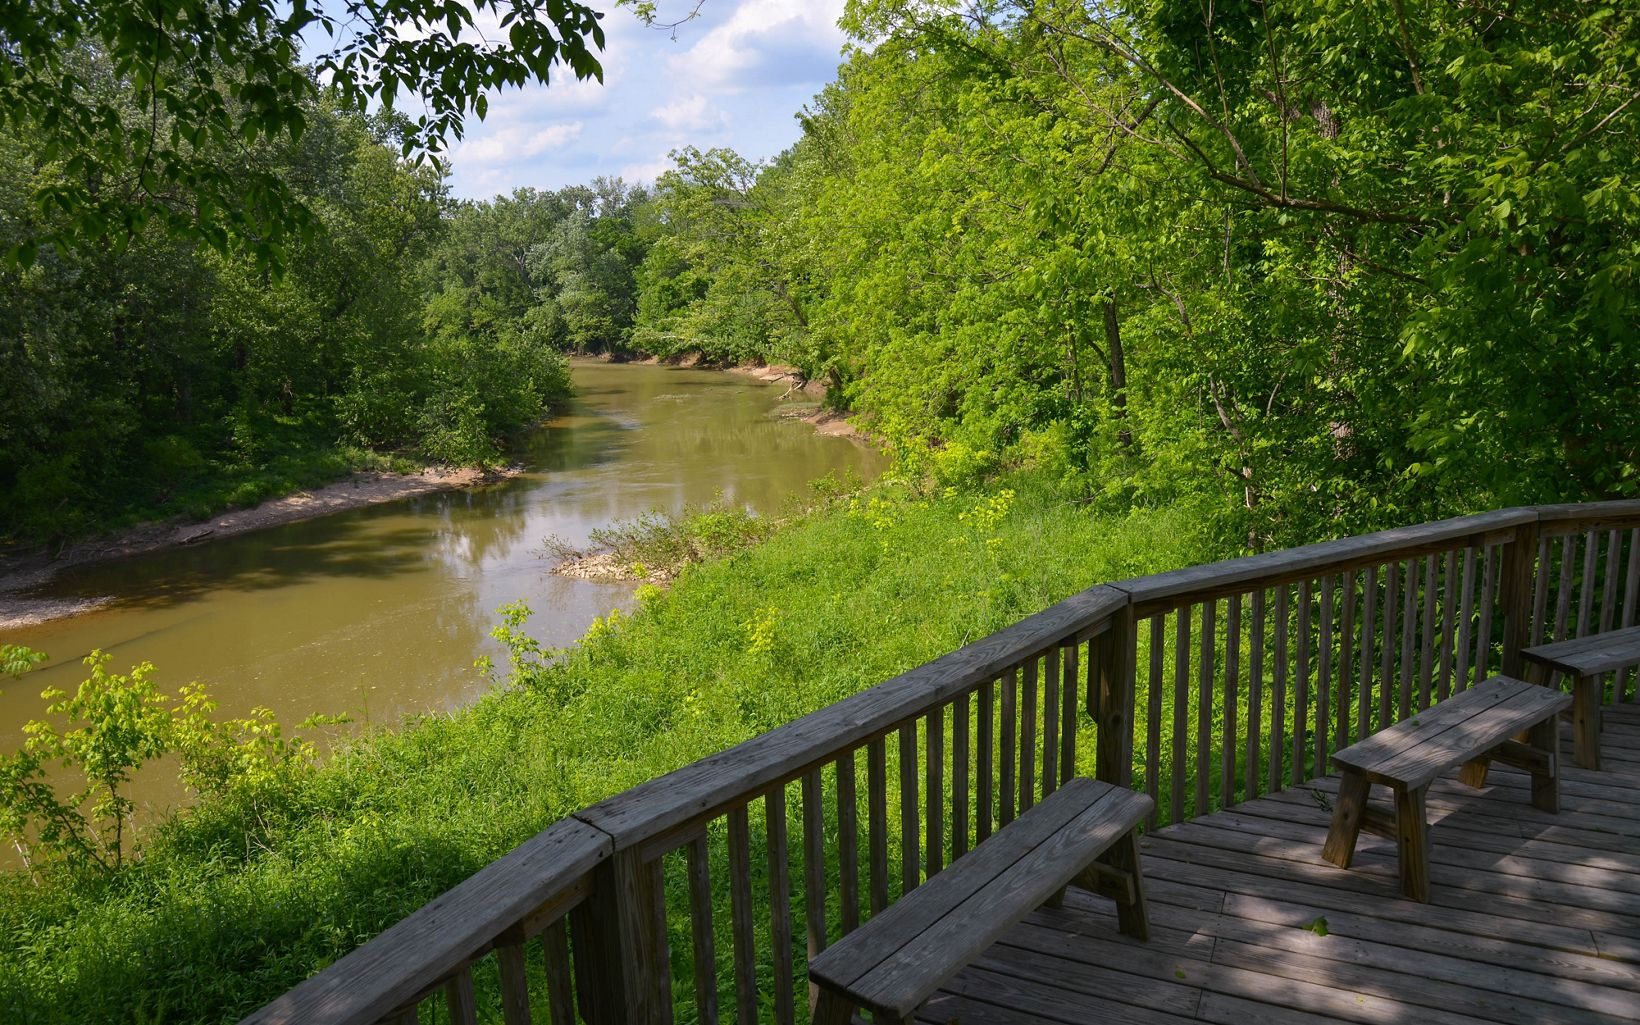 View from a wooden deck out over a slow-moving creek.